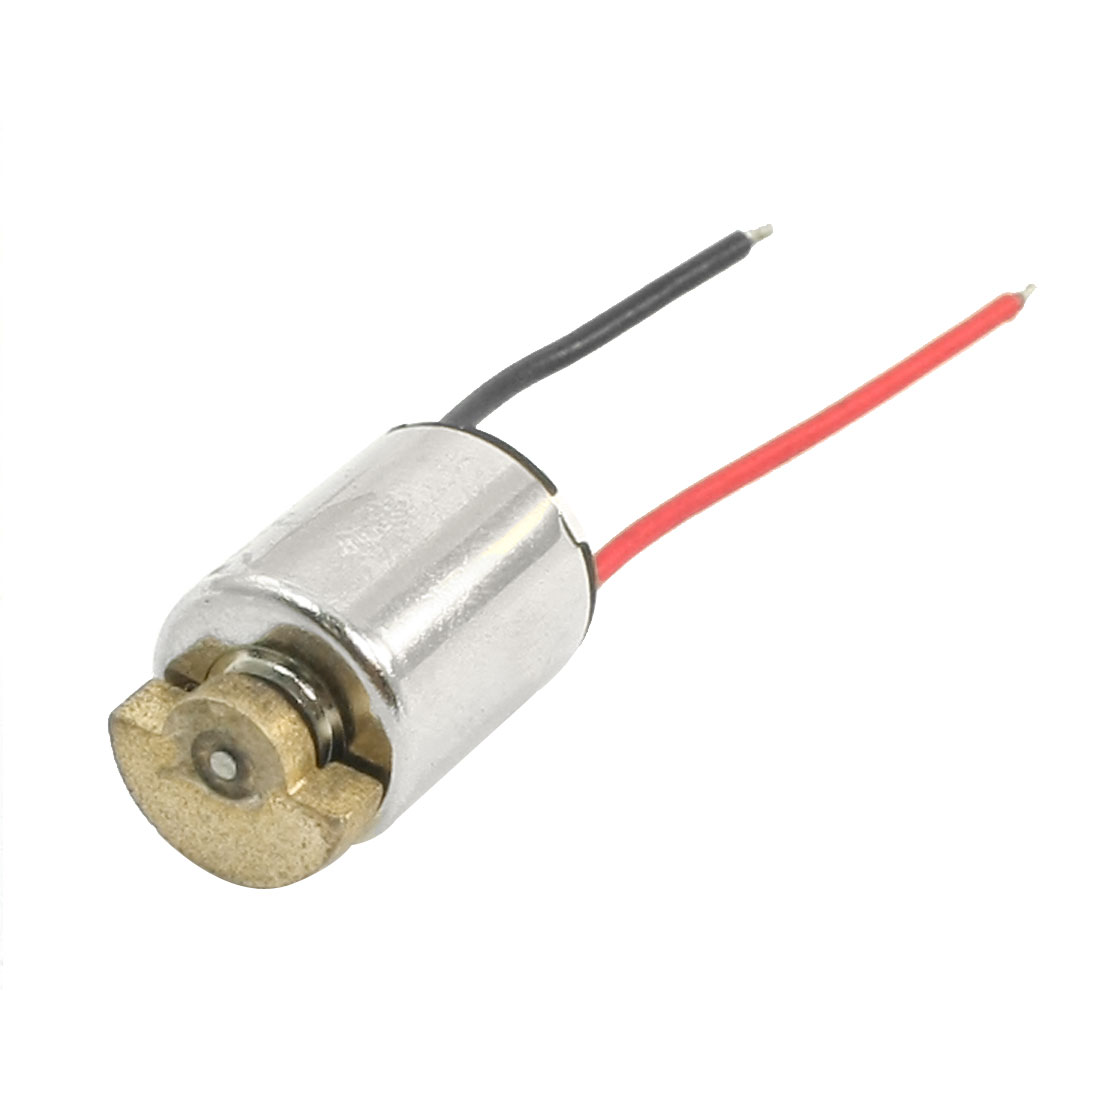 DC-3V-1500RPM-Wired-10mmx13mm-Micro-Coreless-Vibrating-Motor-for-DIY-Toys